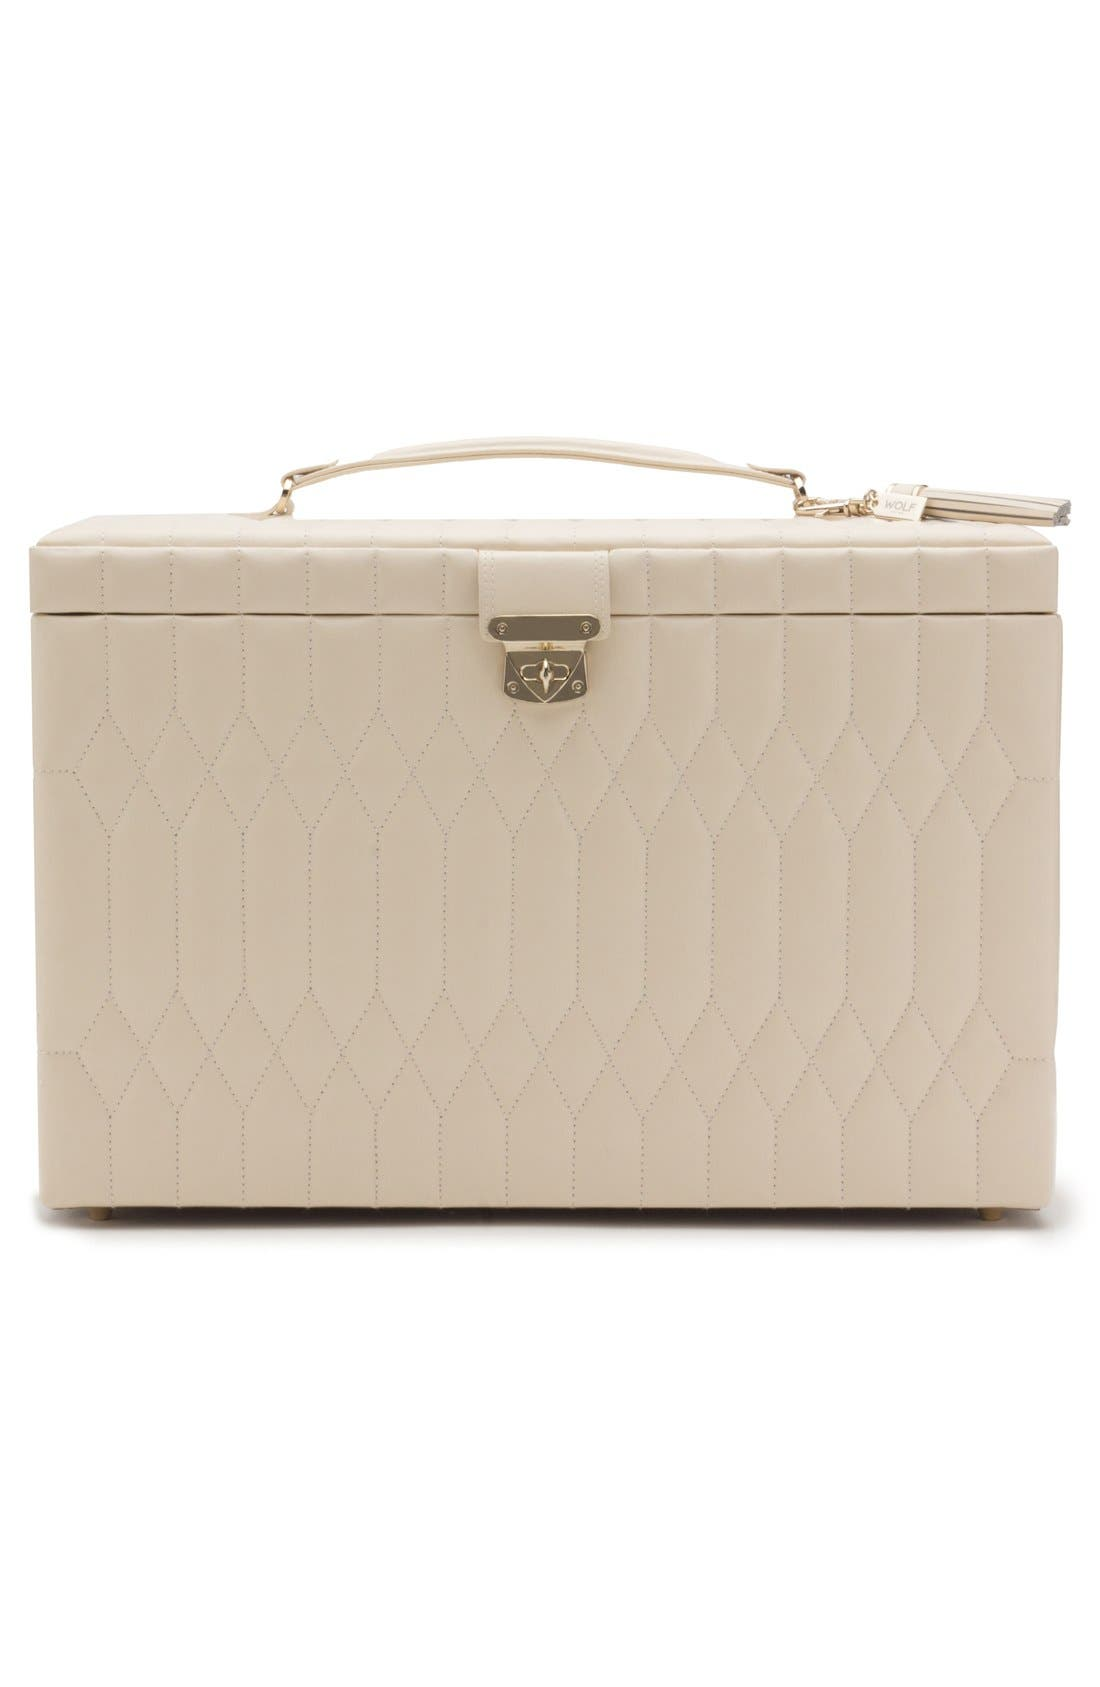 Caroline Jewelry Case,                             Alternate thumbnail 3, color,                             Ivory